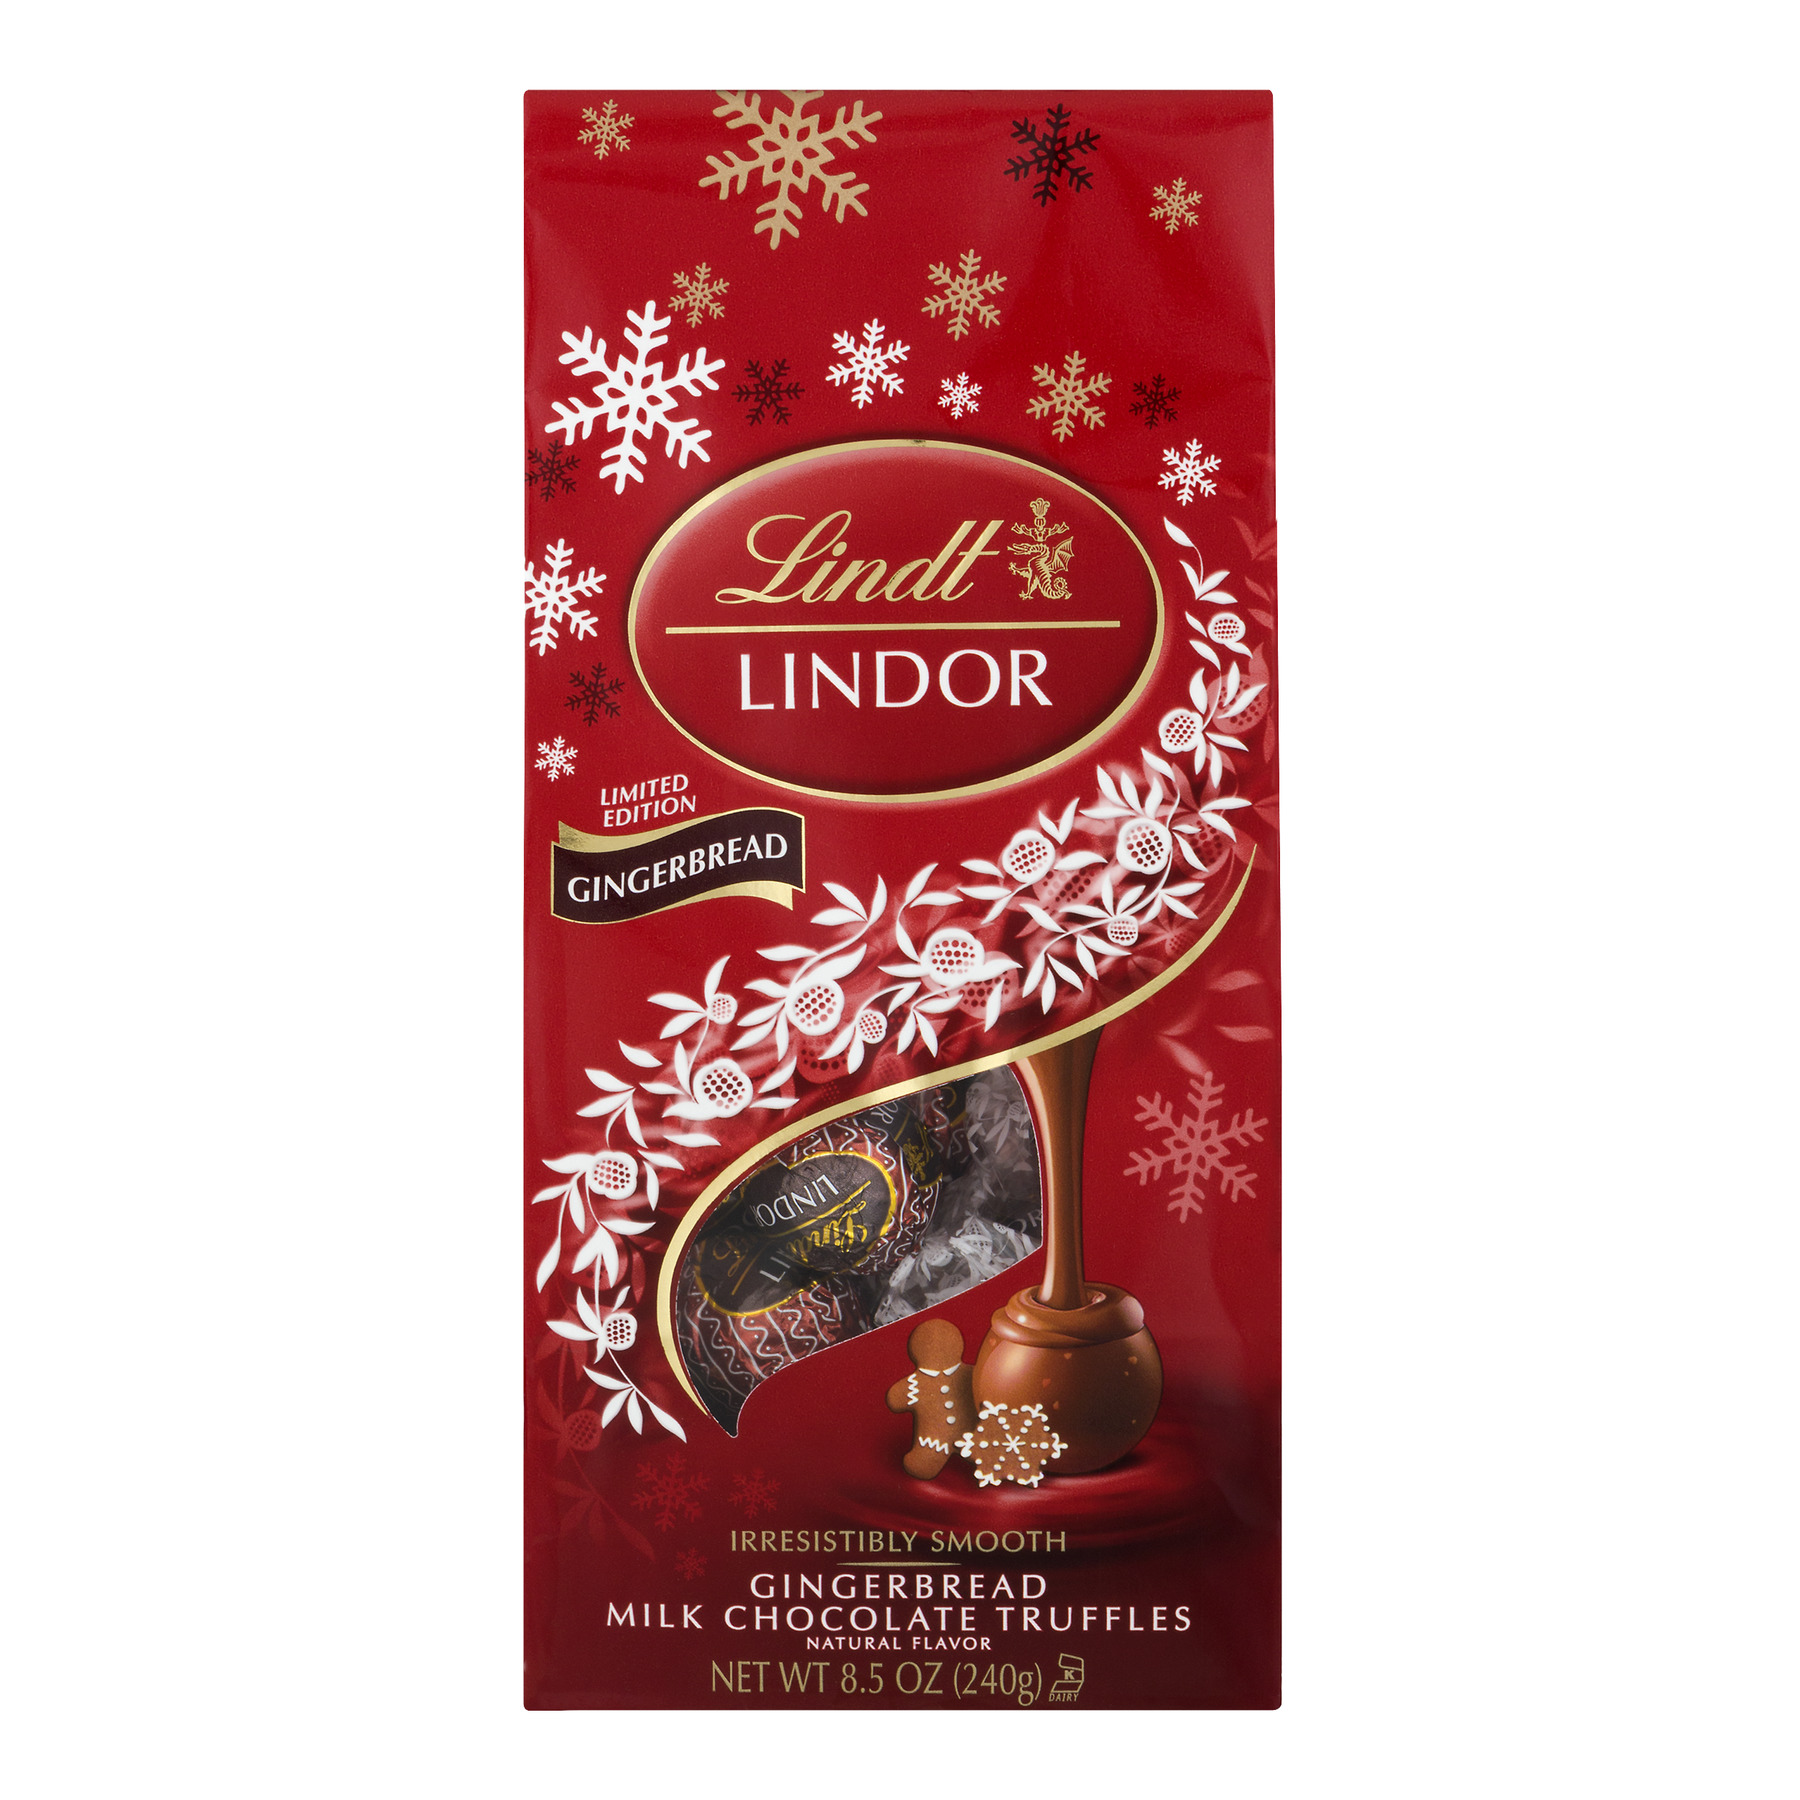 Lindt Lindor Milk Chocolate Truffles Gingerbread, 8.5 oz